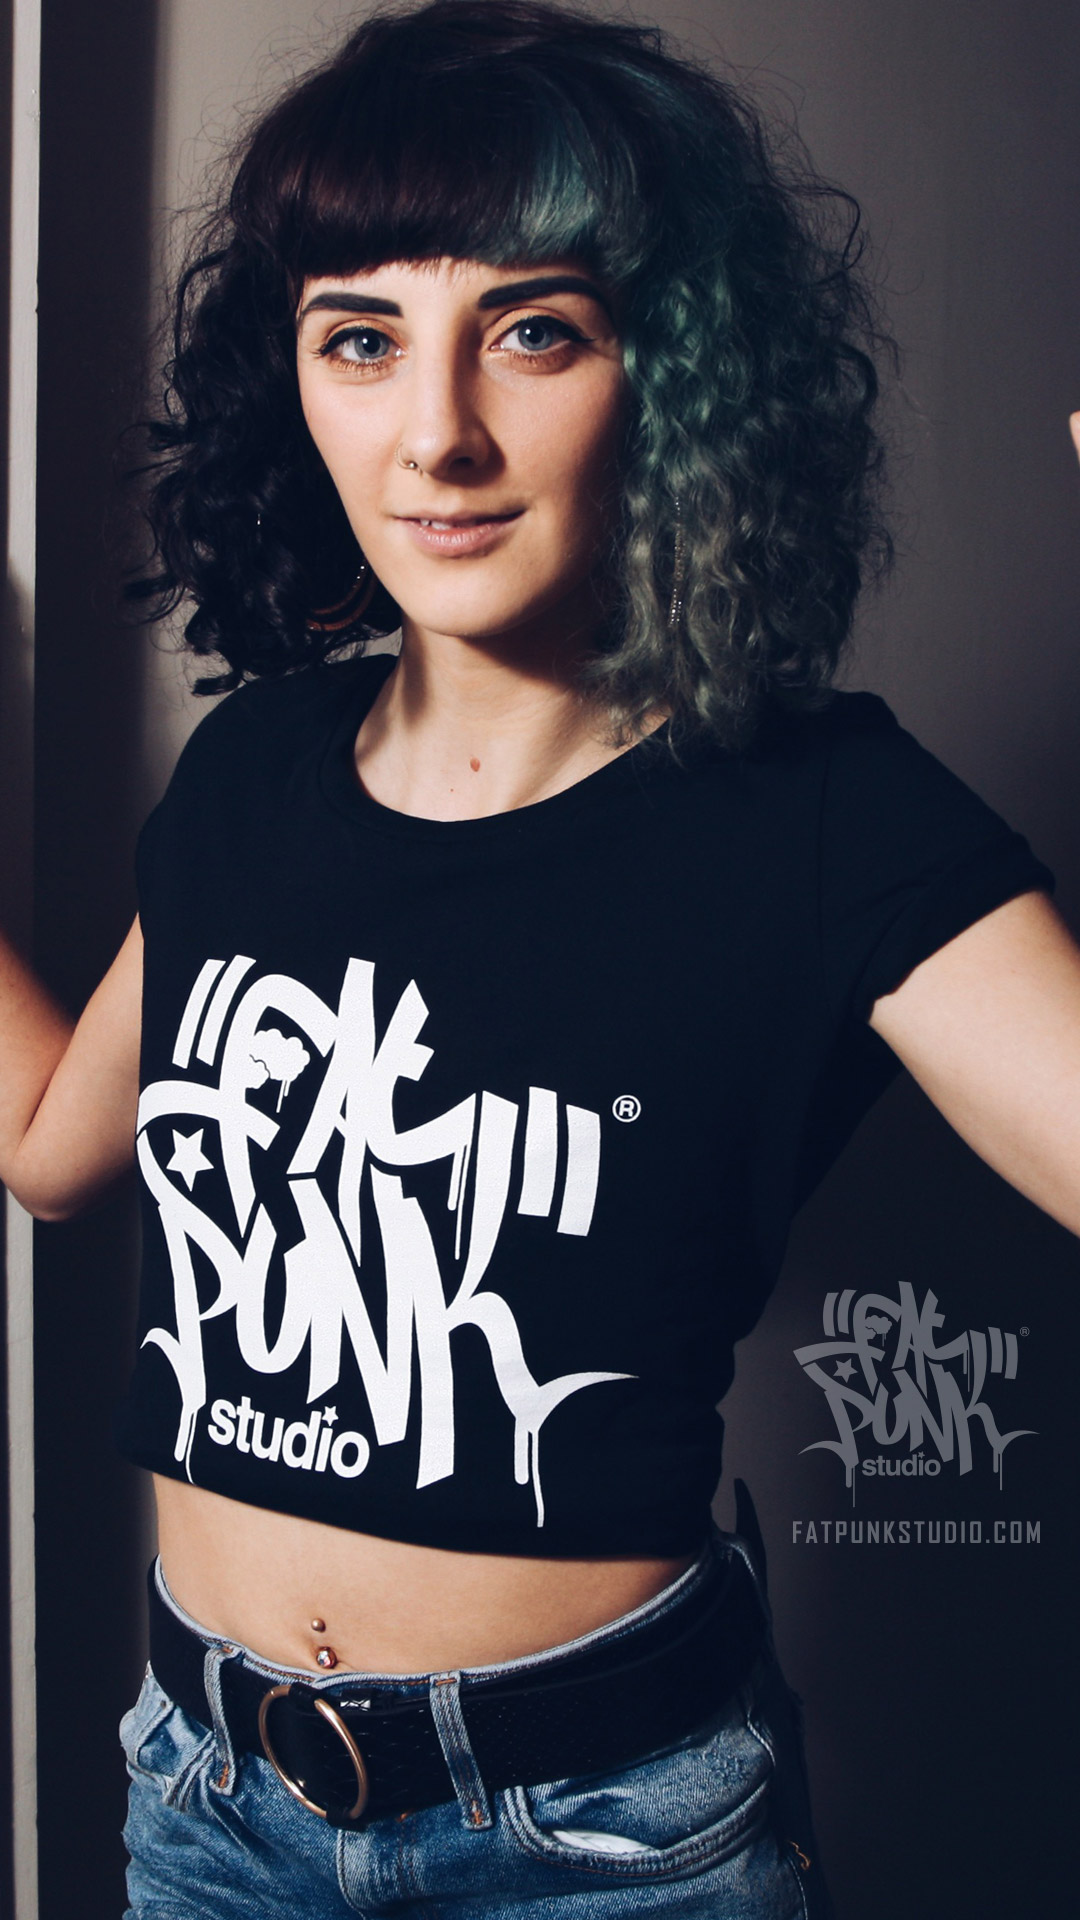 curly-chloe-model-fat-punk-studio-04